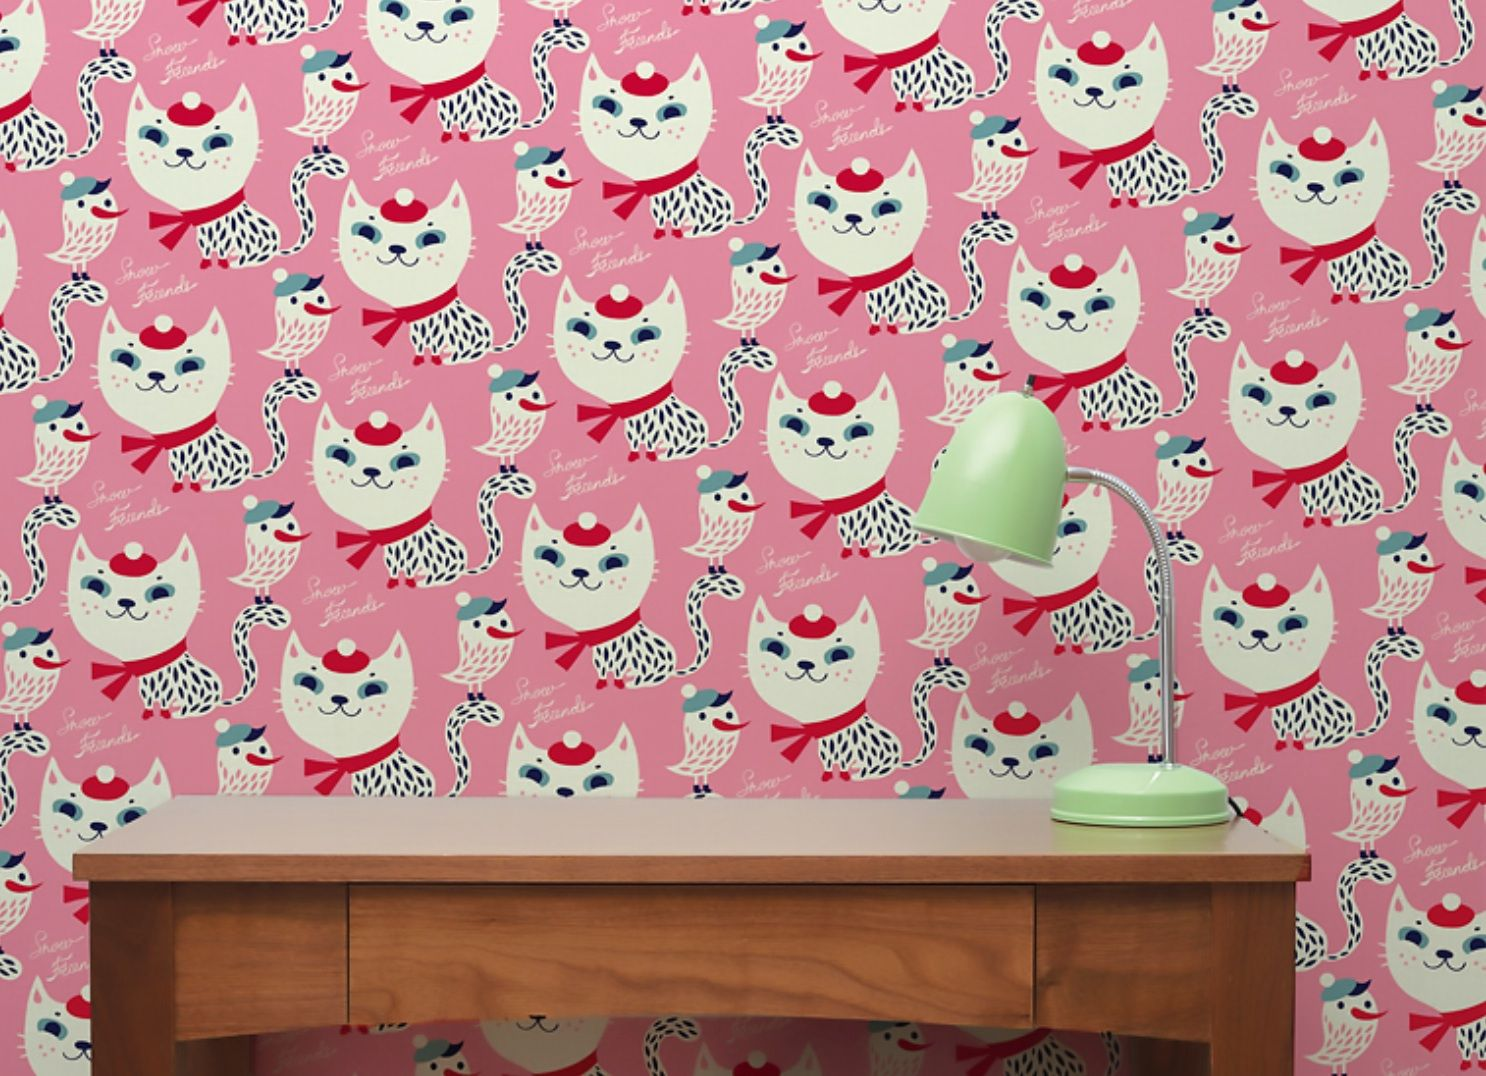 Restickable wallpaper from chispum available at shop.bobokids.co.uk